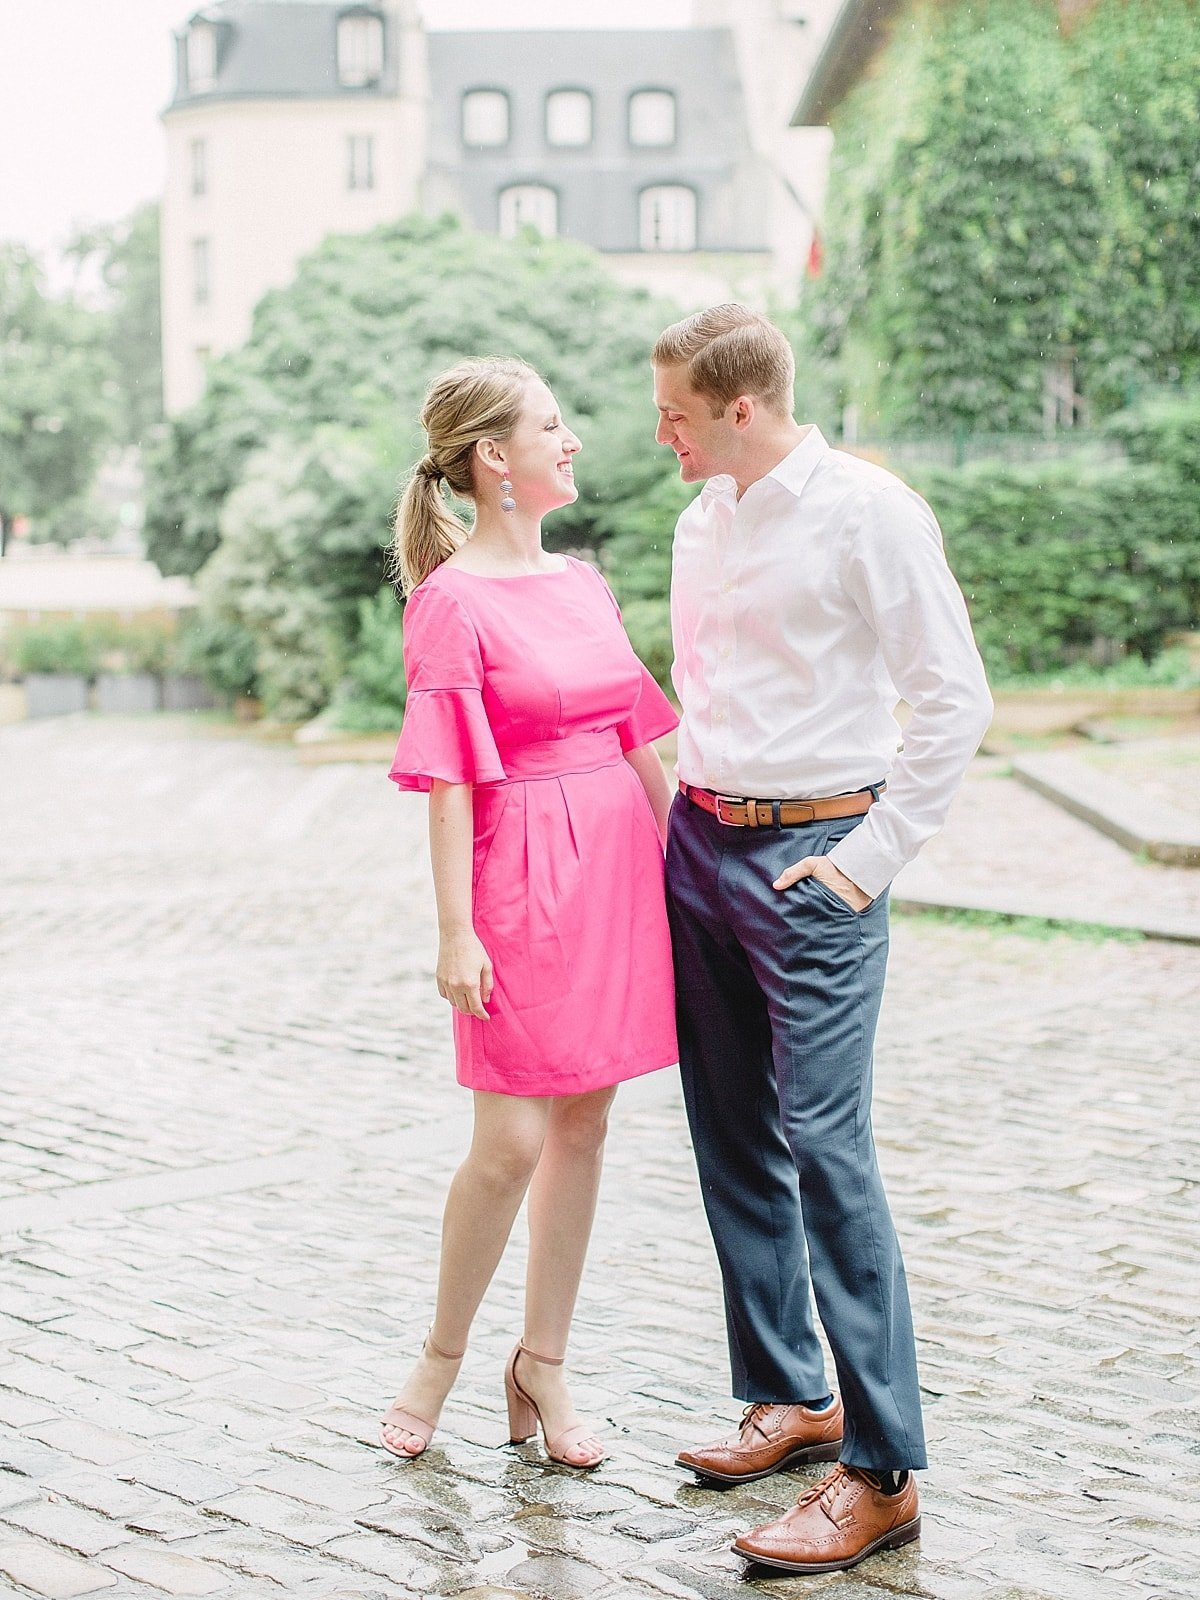 paris-photo-session-anniversary-alicia-yarrish-photography_35